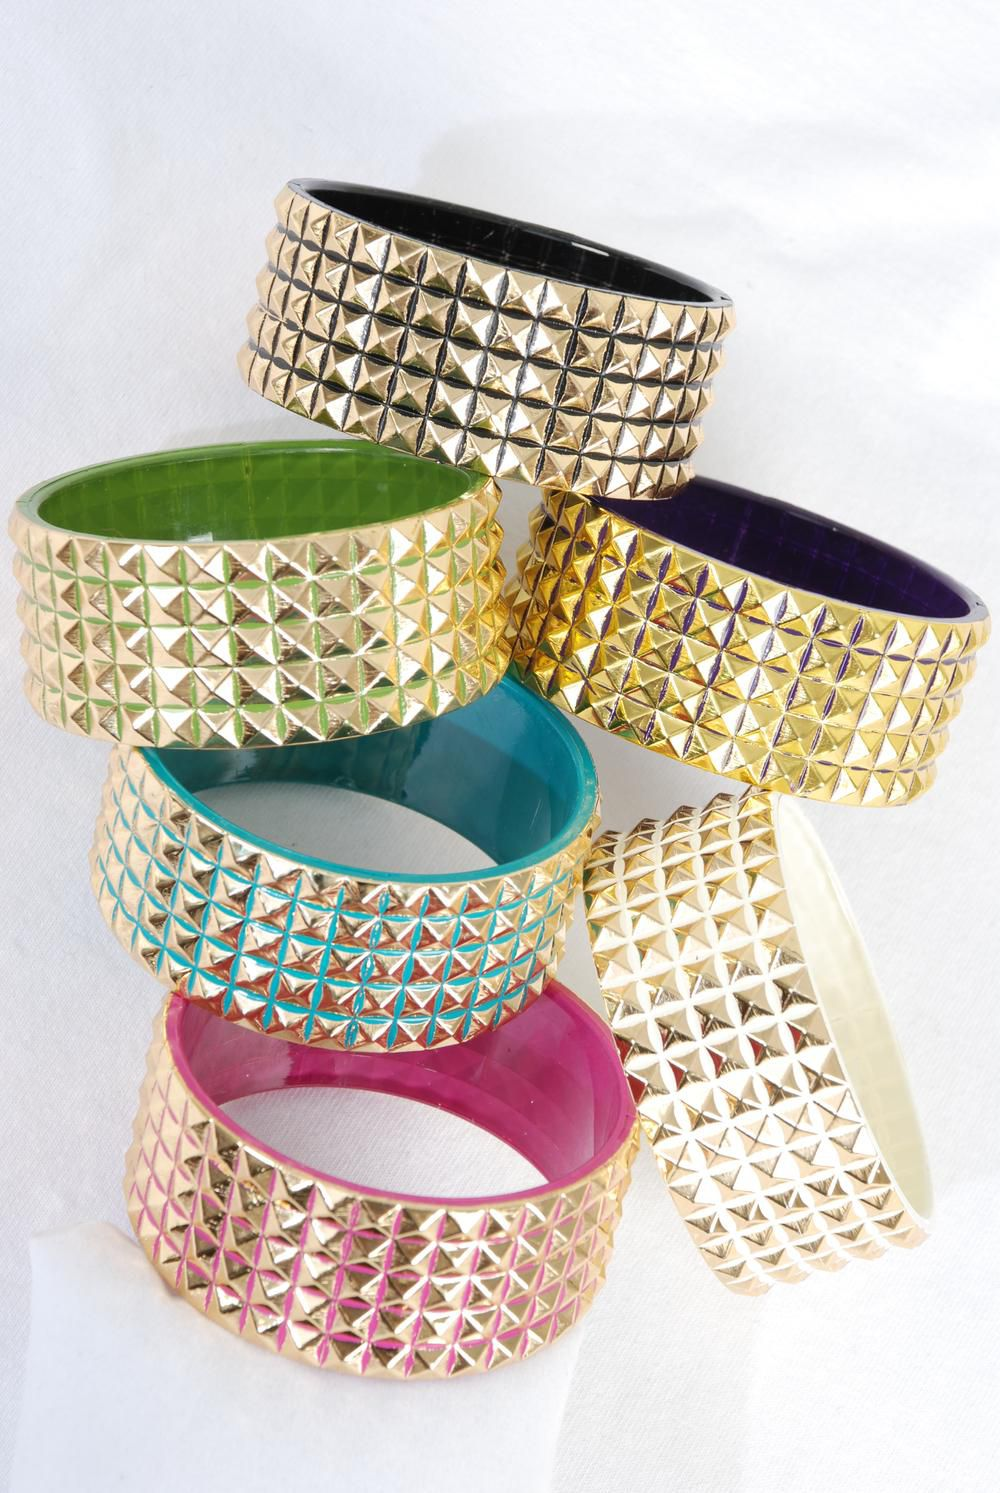 "Bangle Acrylic 2 tone 3D Gold Mix/DZ **Multi** Size-2.75""x 1.25"" Wide,2 of each Color Asst,Hang Tag & OPP Bag & UPC Code"